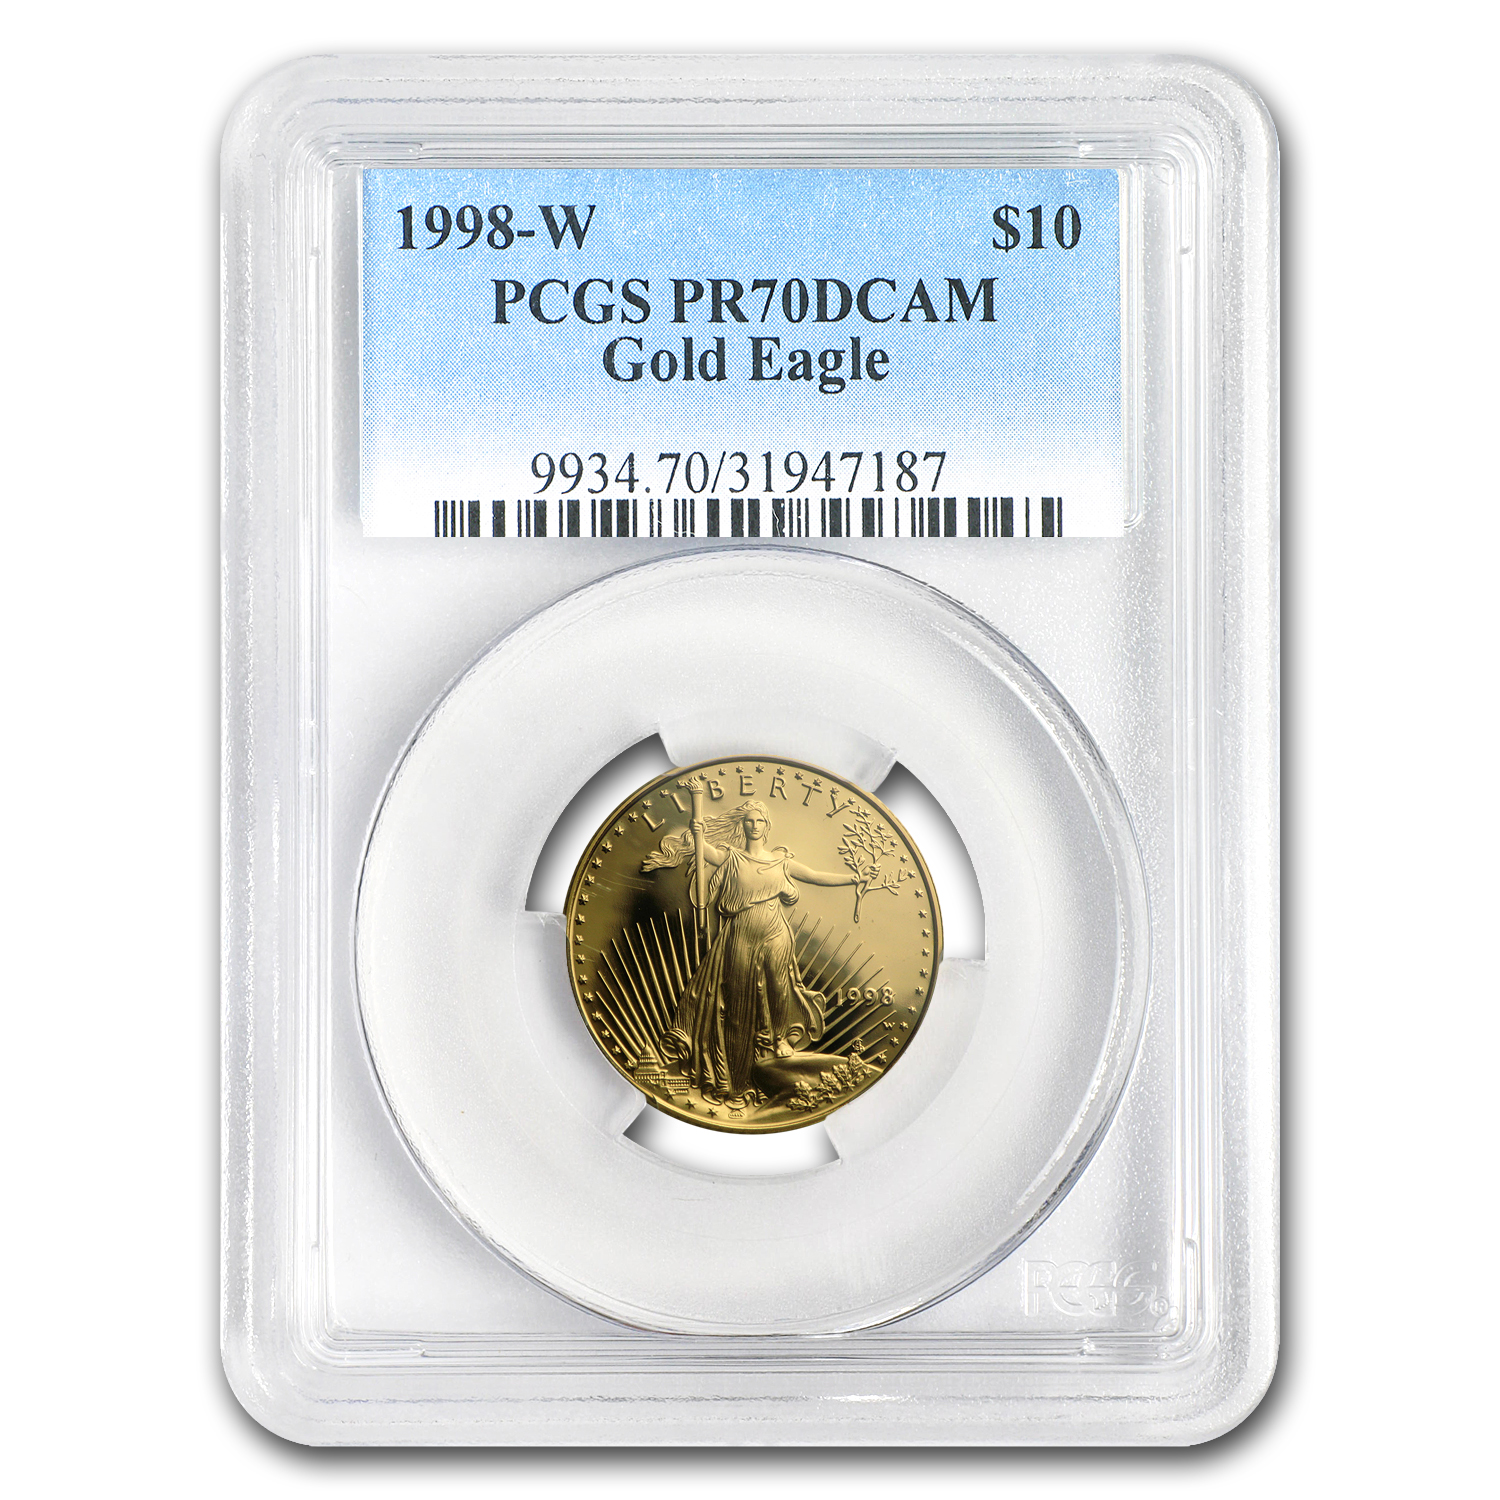 1998-W 1/4 oz Proof Gold American Eagle PR-70 PCGS